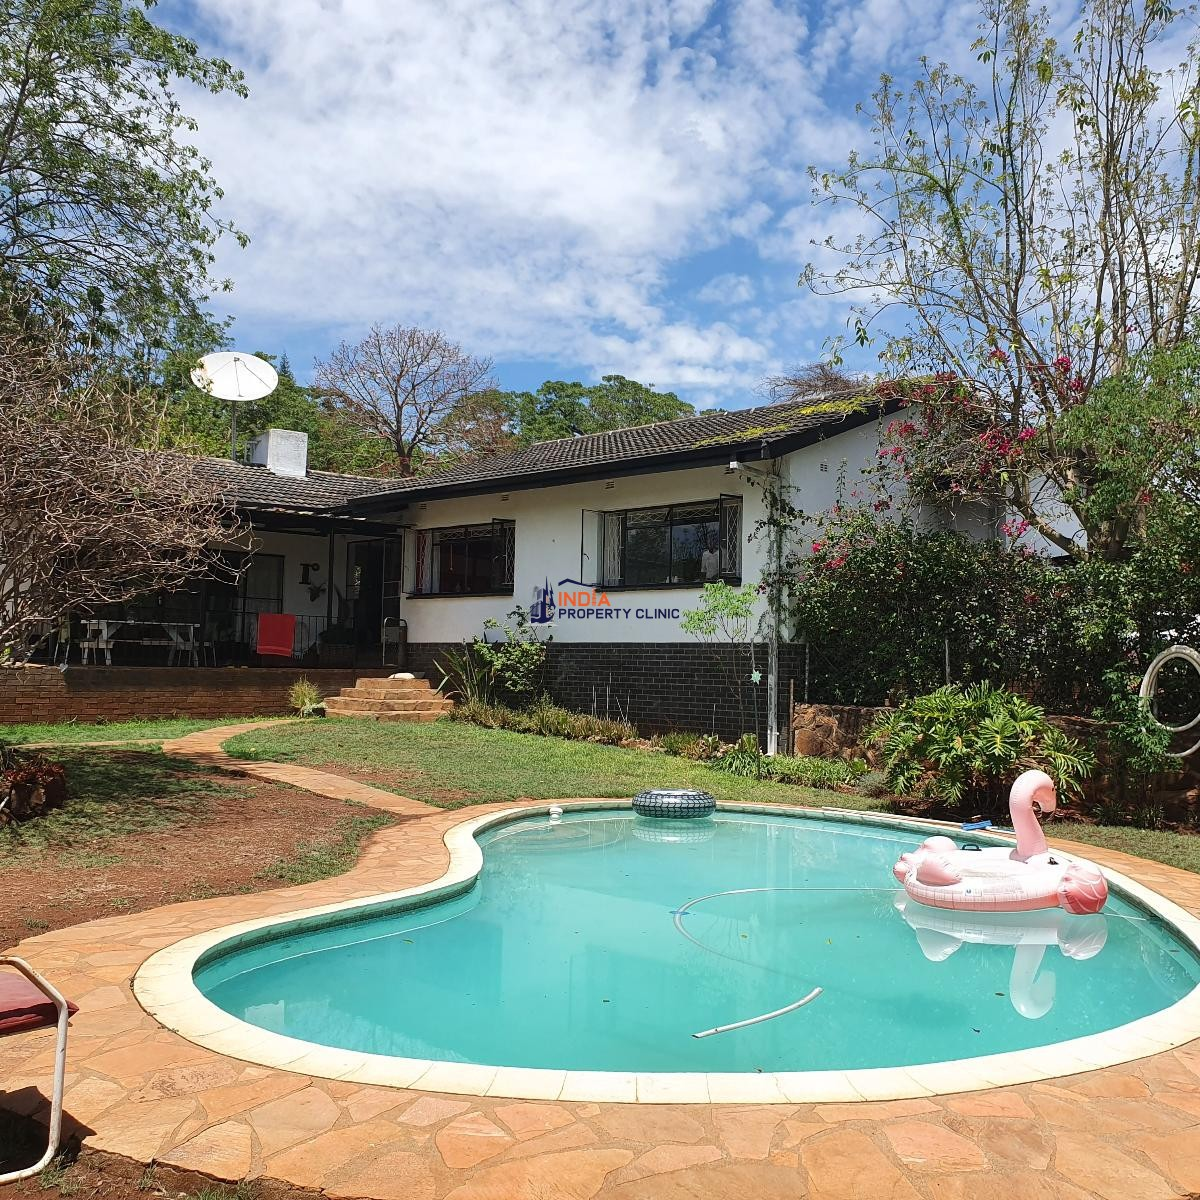 3 Bedroom House for Sale in Greystone